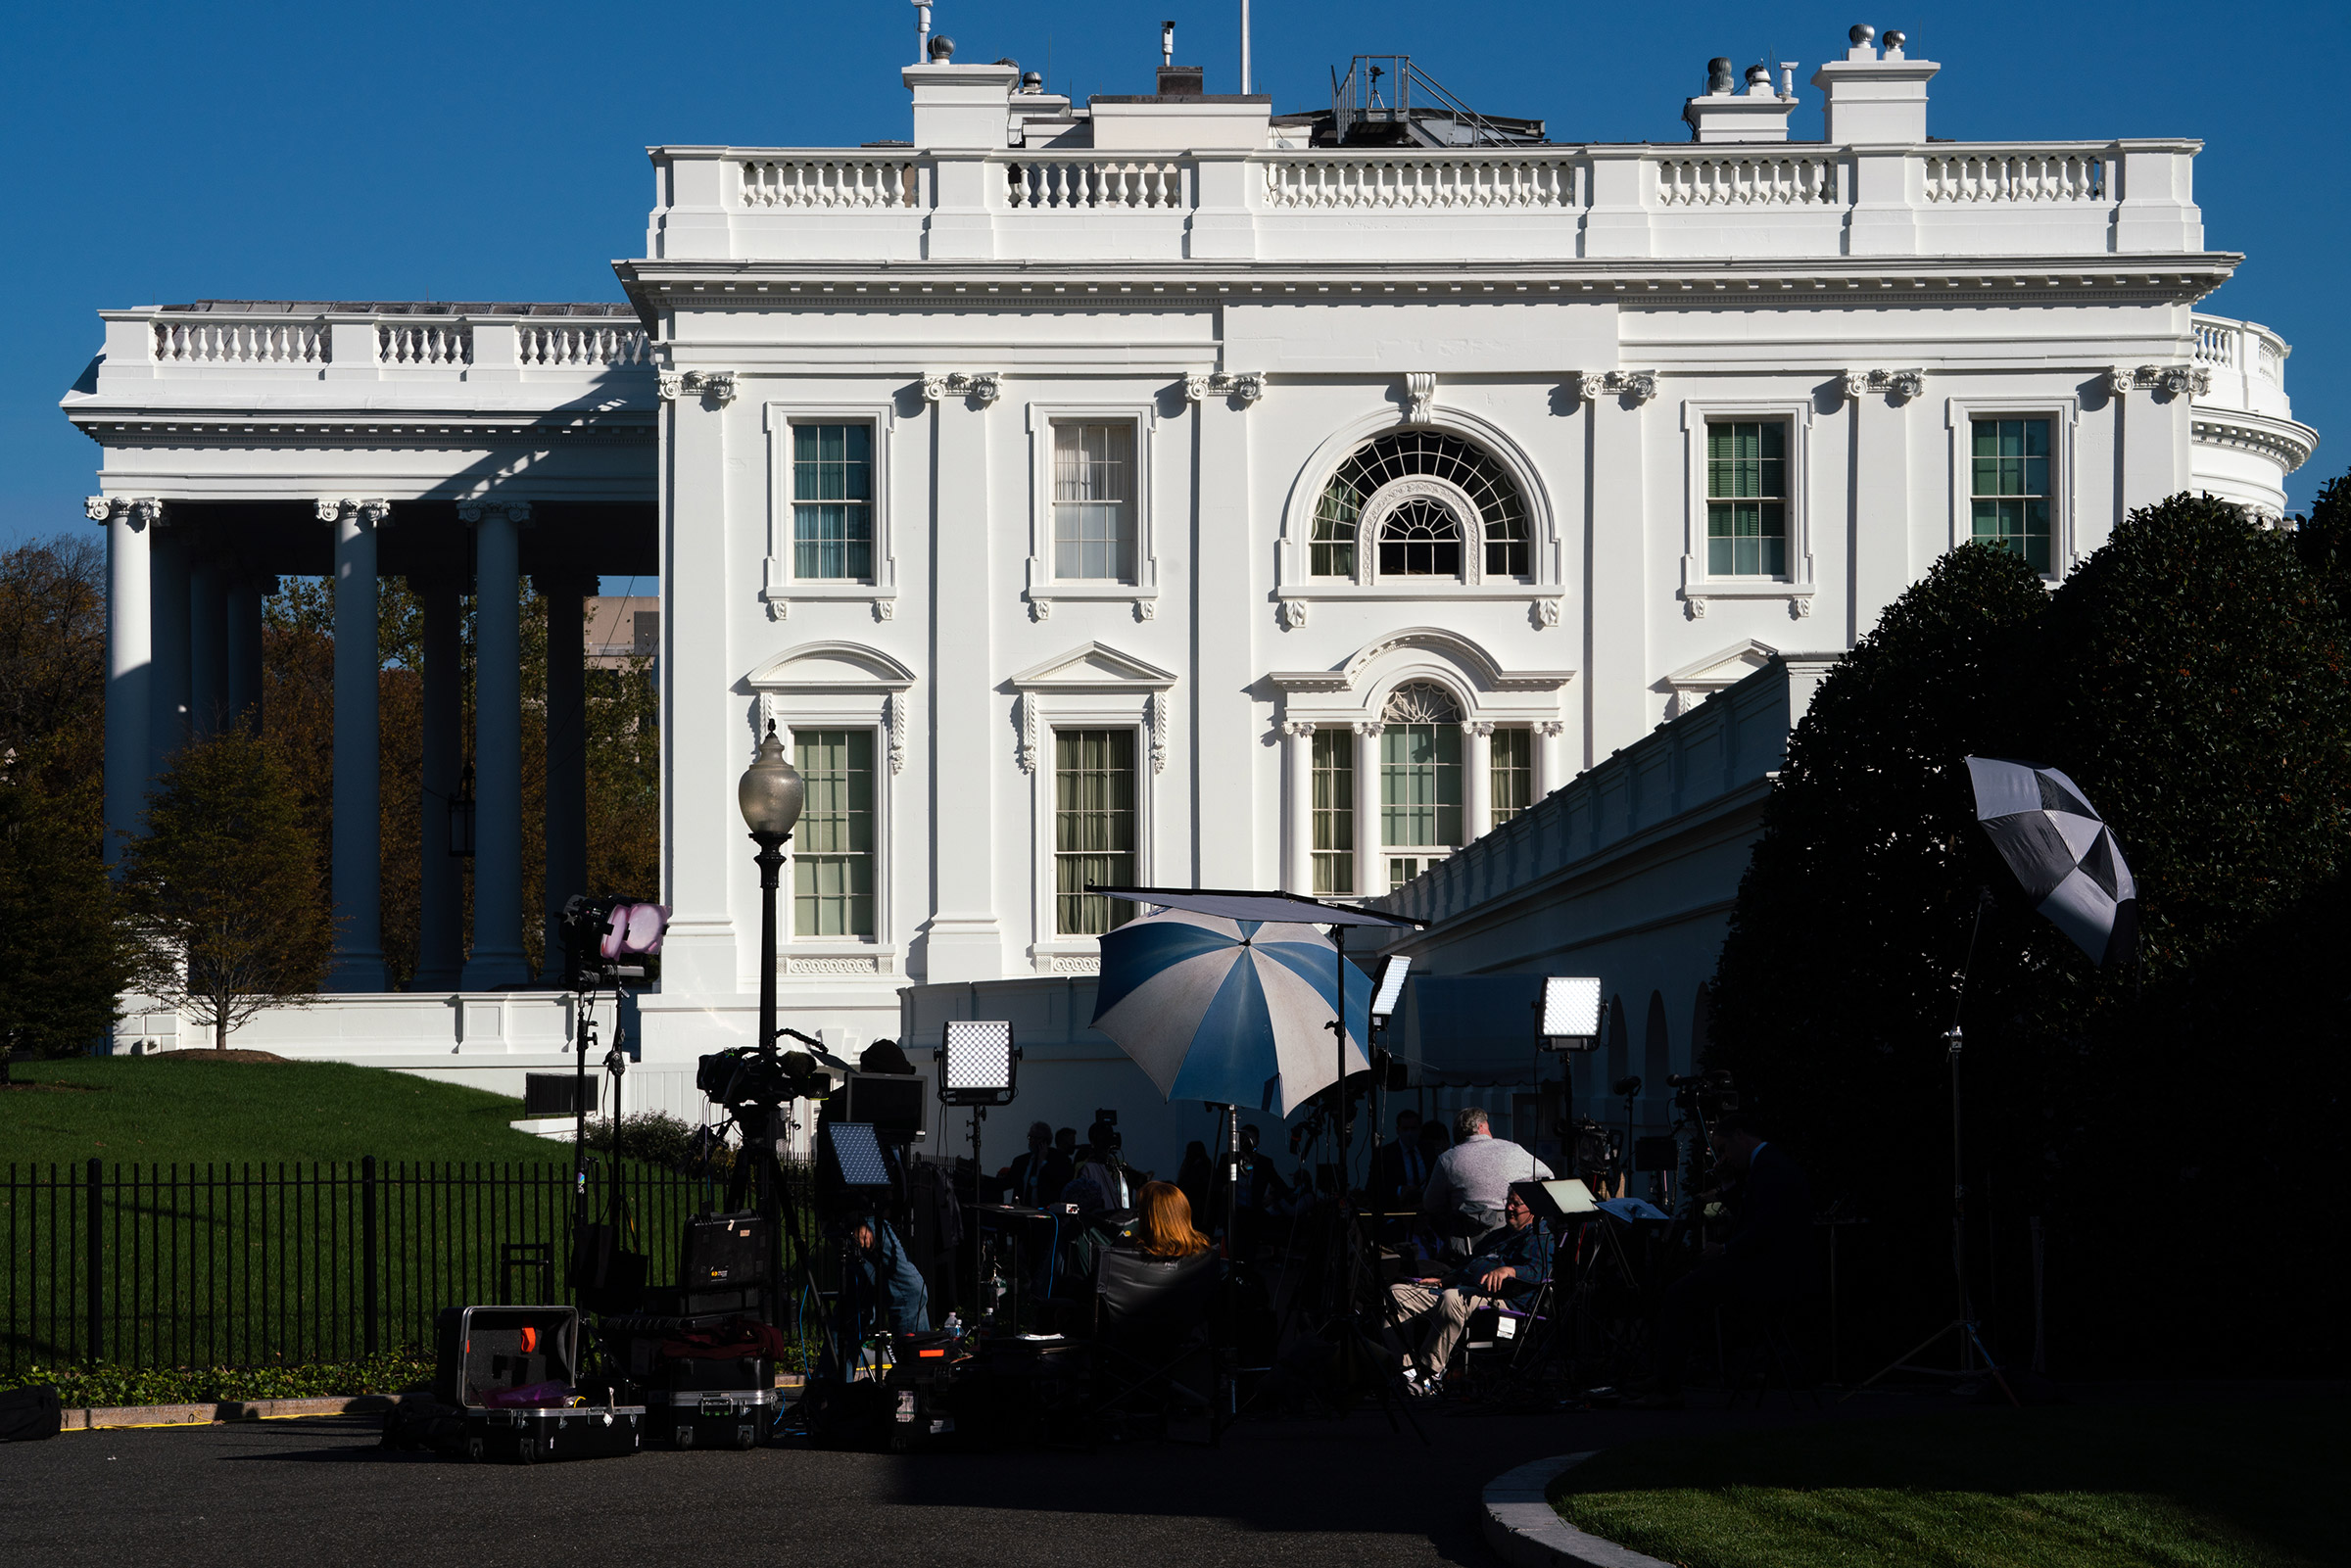 The White House grounds on Nov. 6, when the results remained unclear.